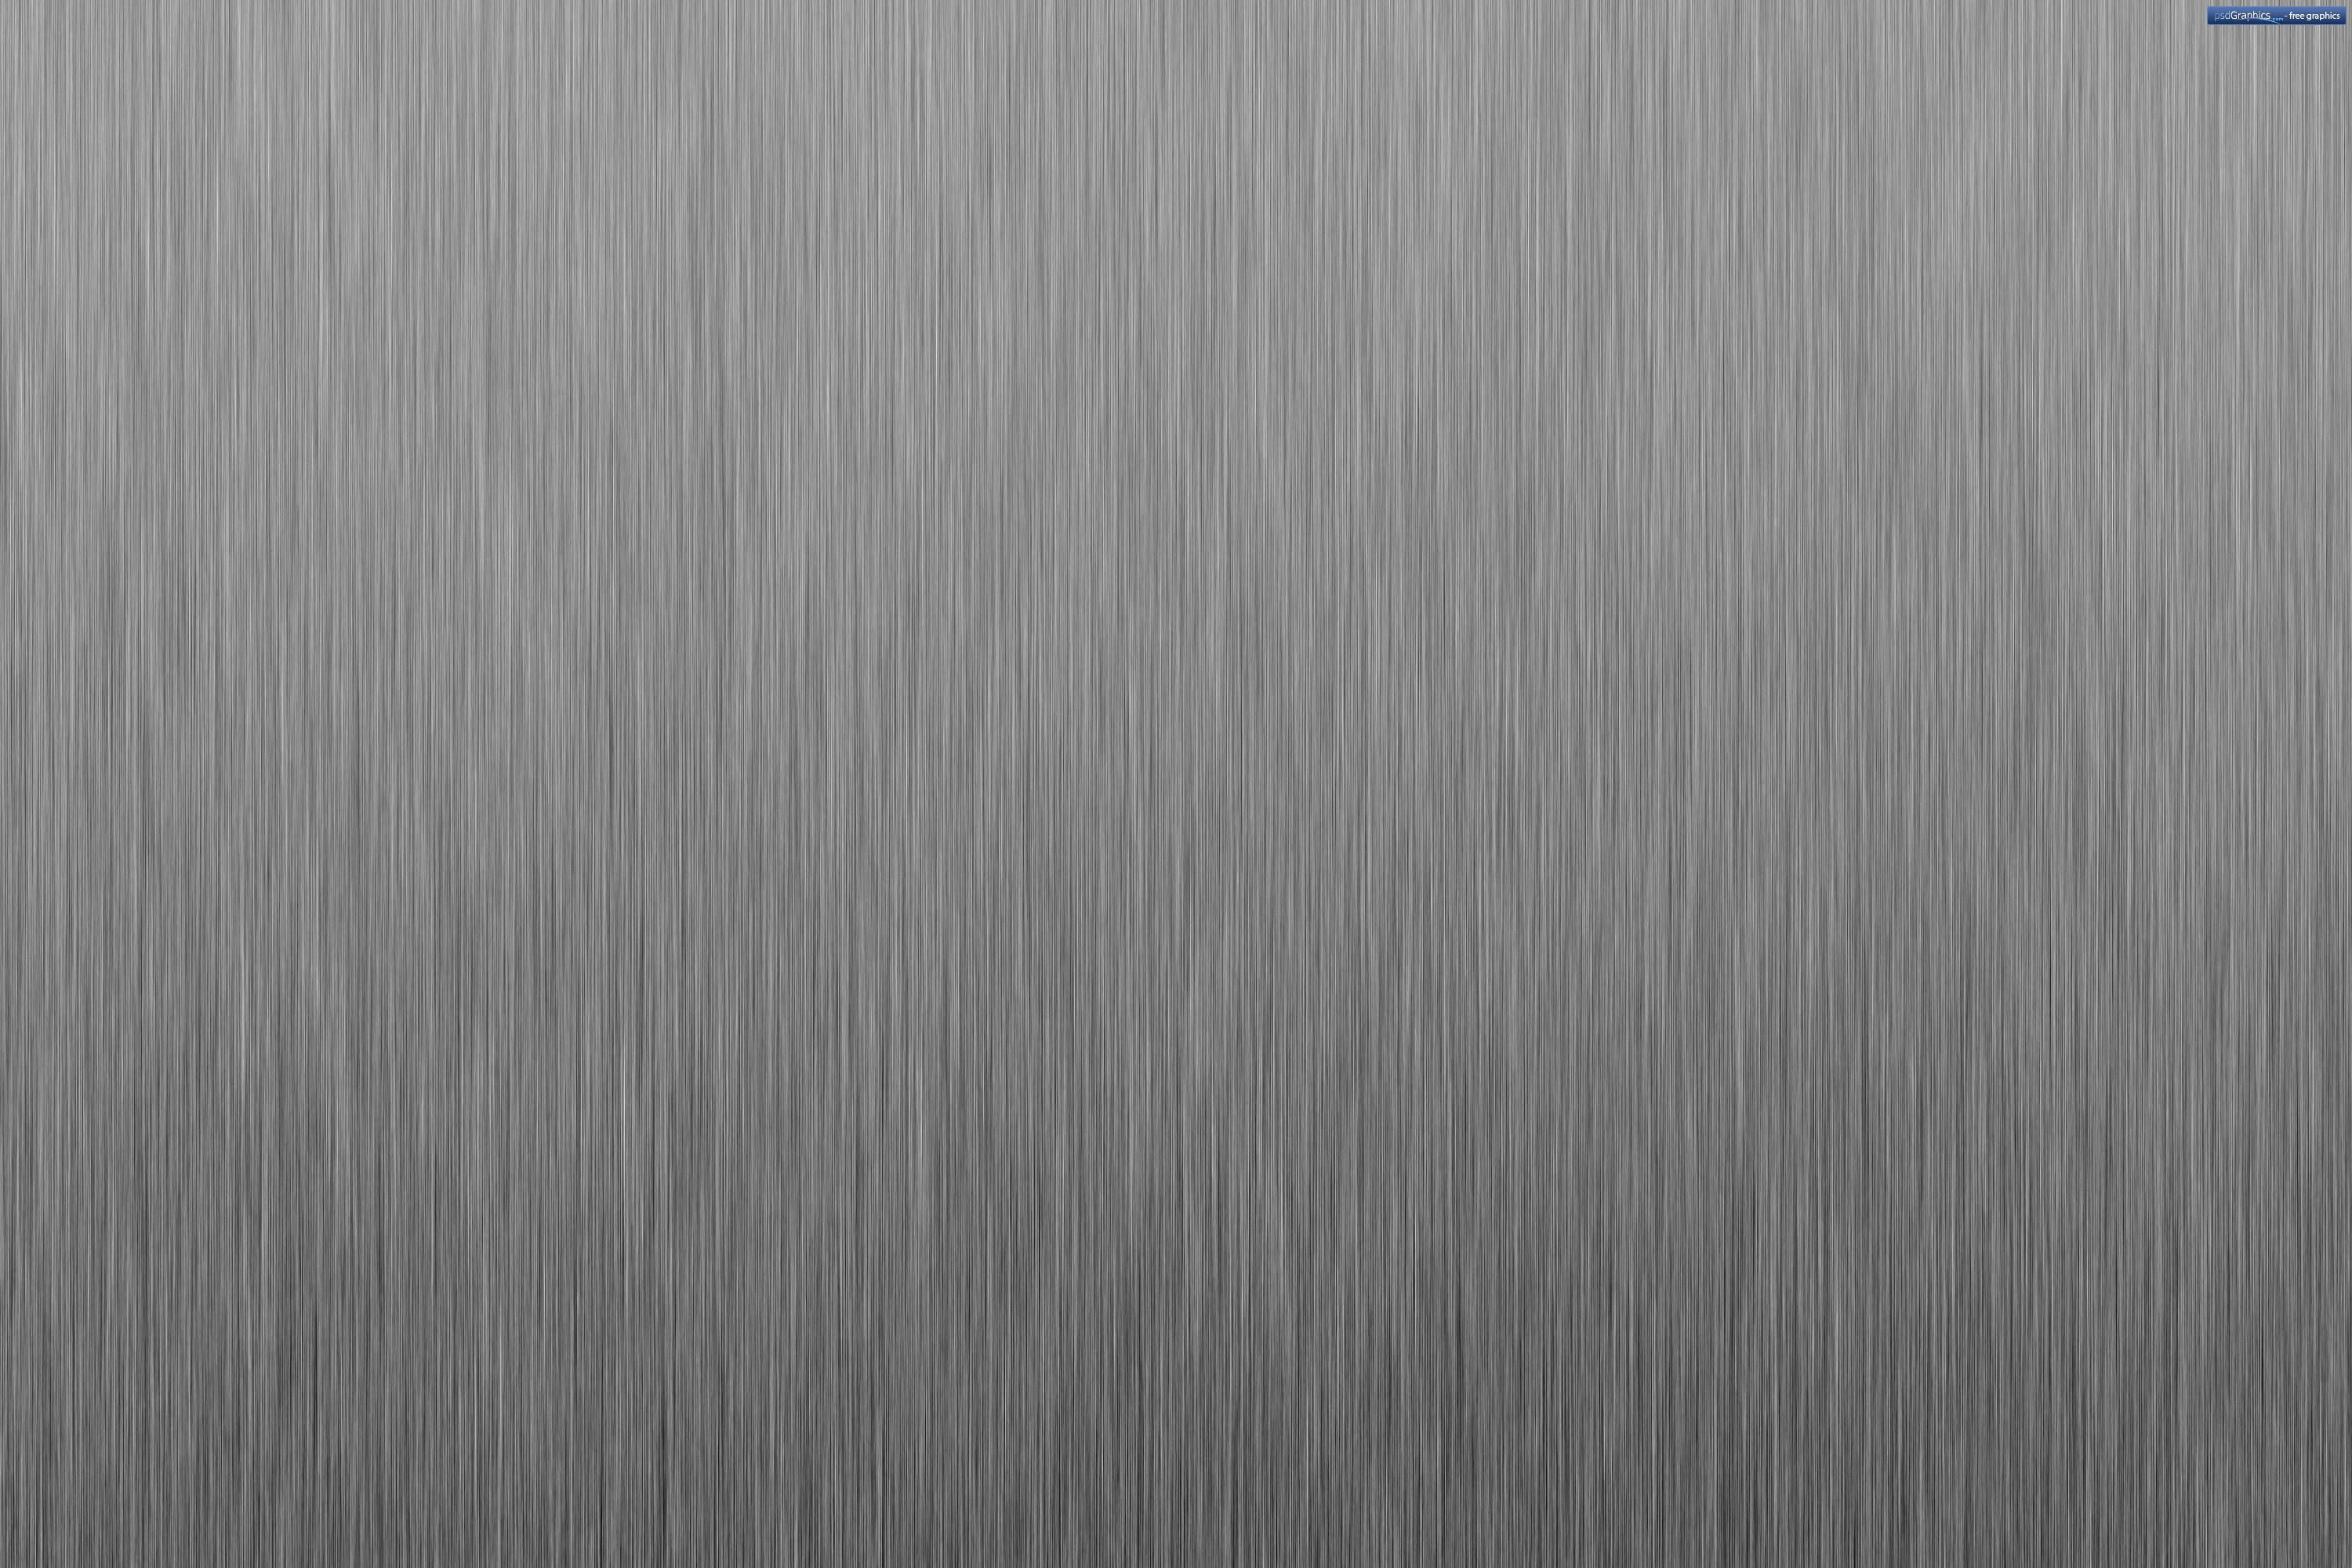 image result for free seamless stainless steel textures